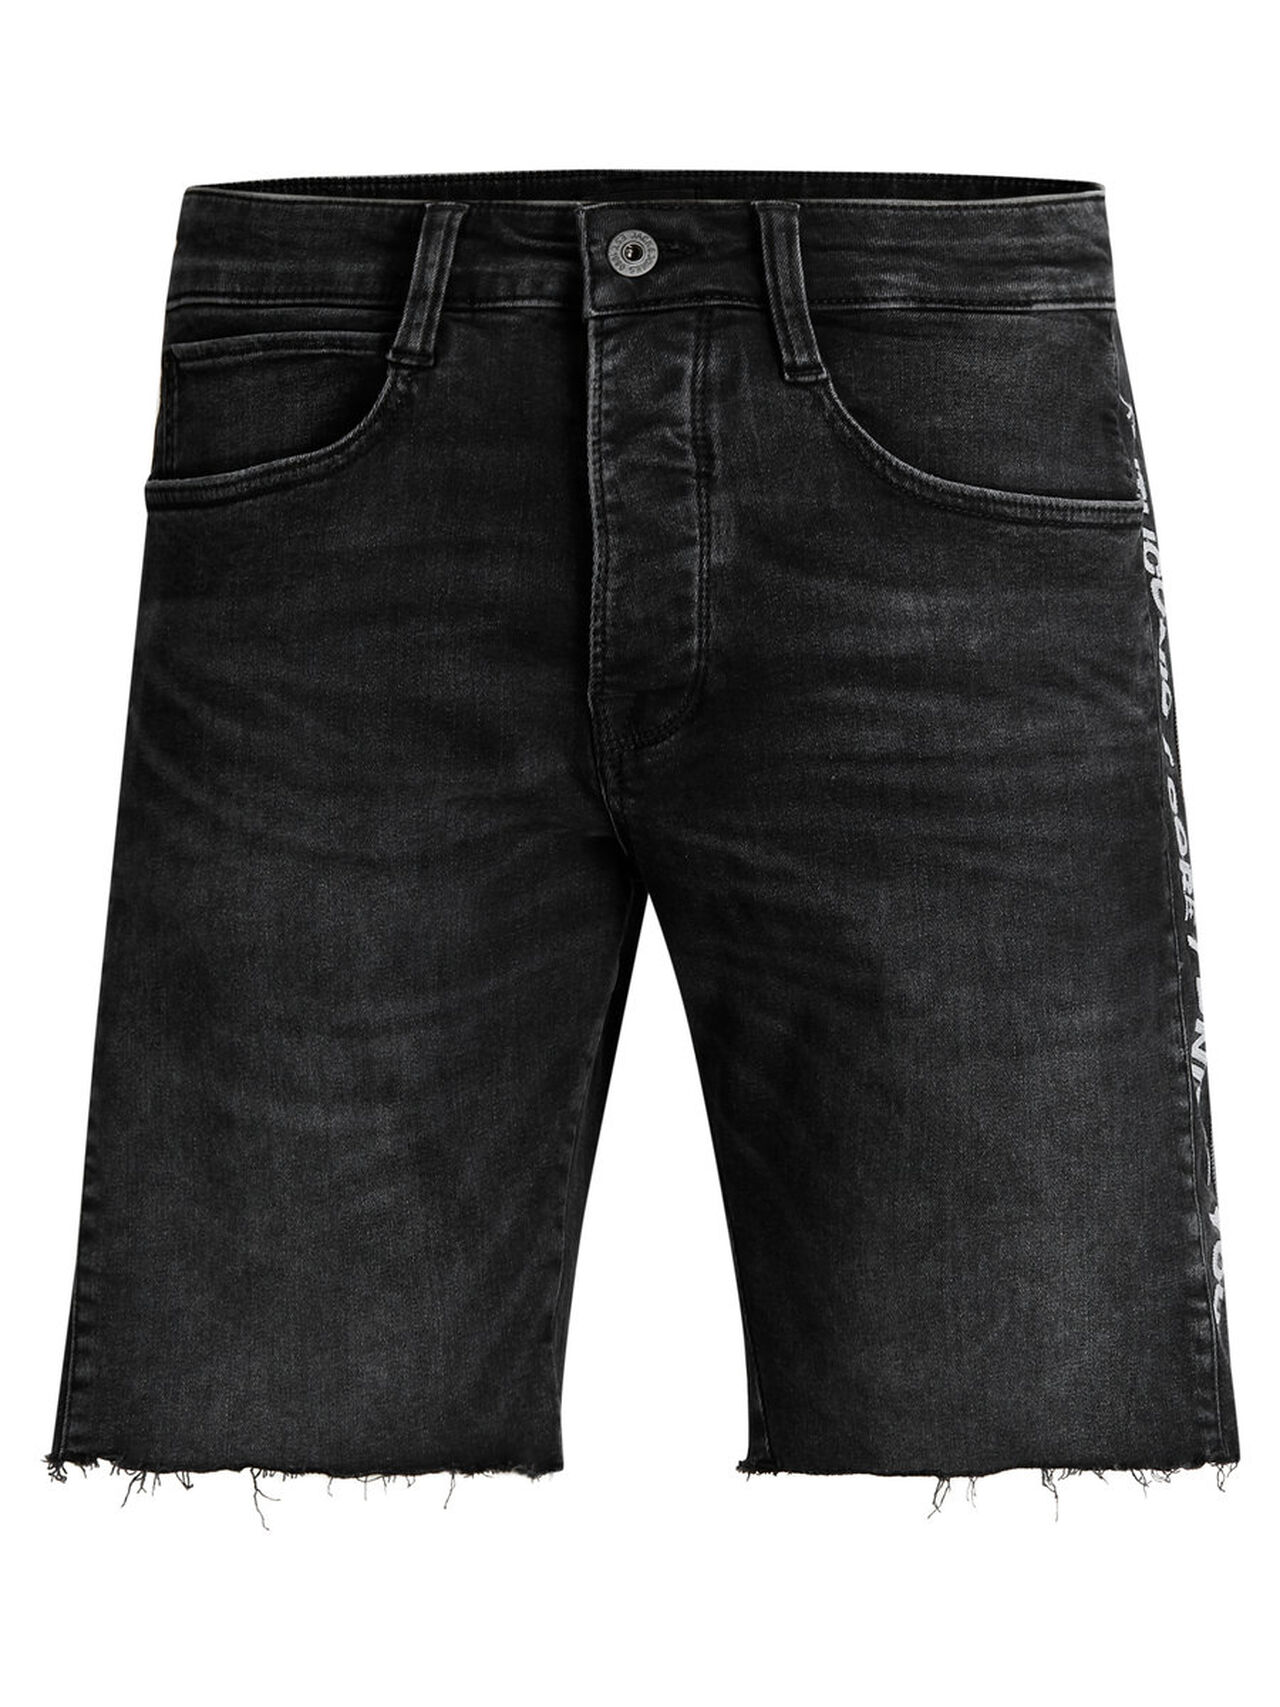 JACK & JONES Rick Original Jj 043 50sps Shorts Men black